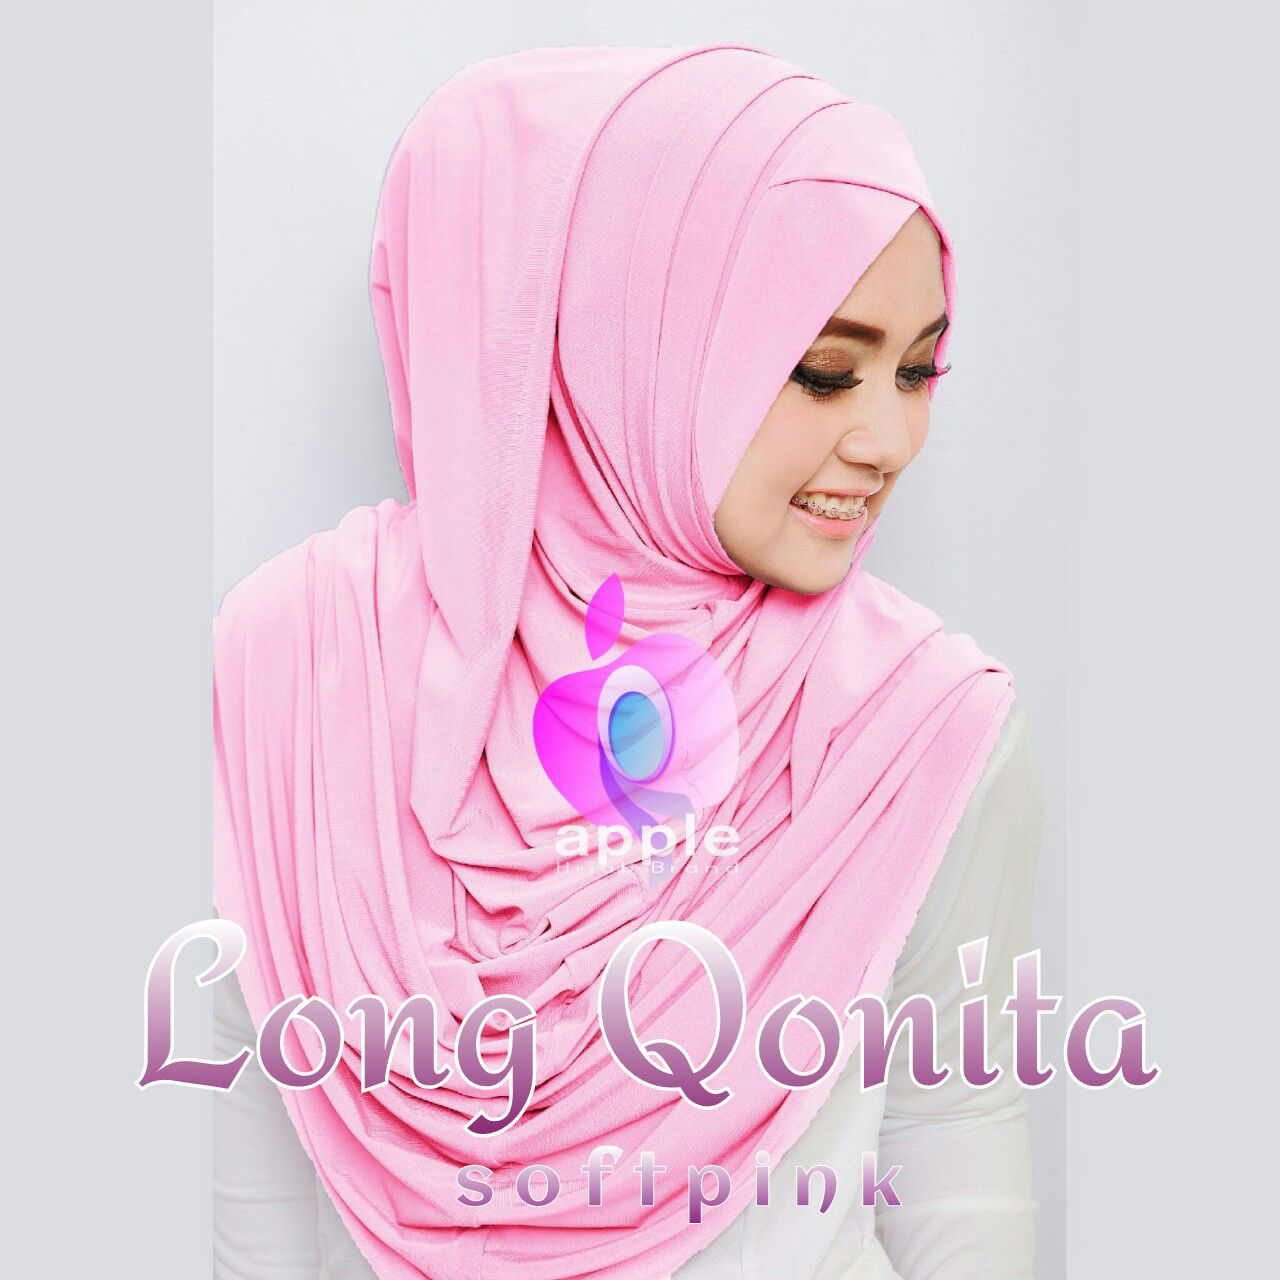 apple hijab long qonita softb pink